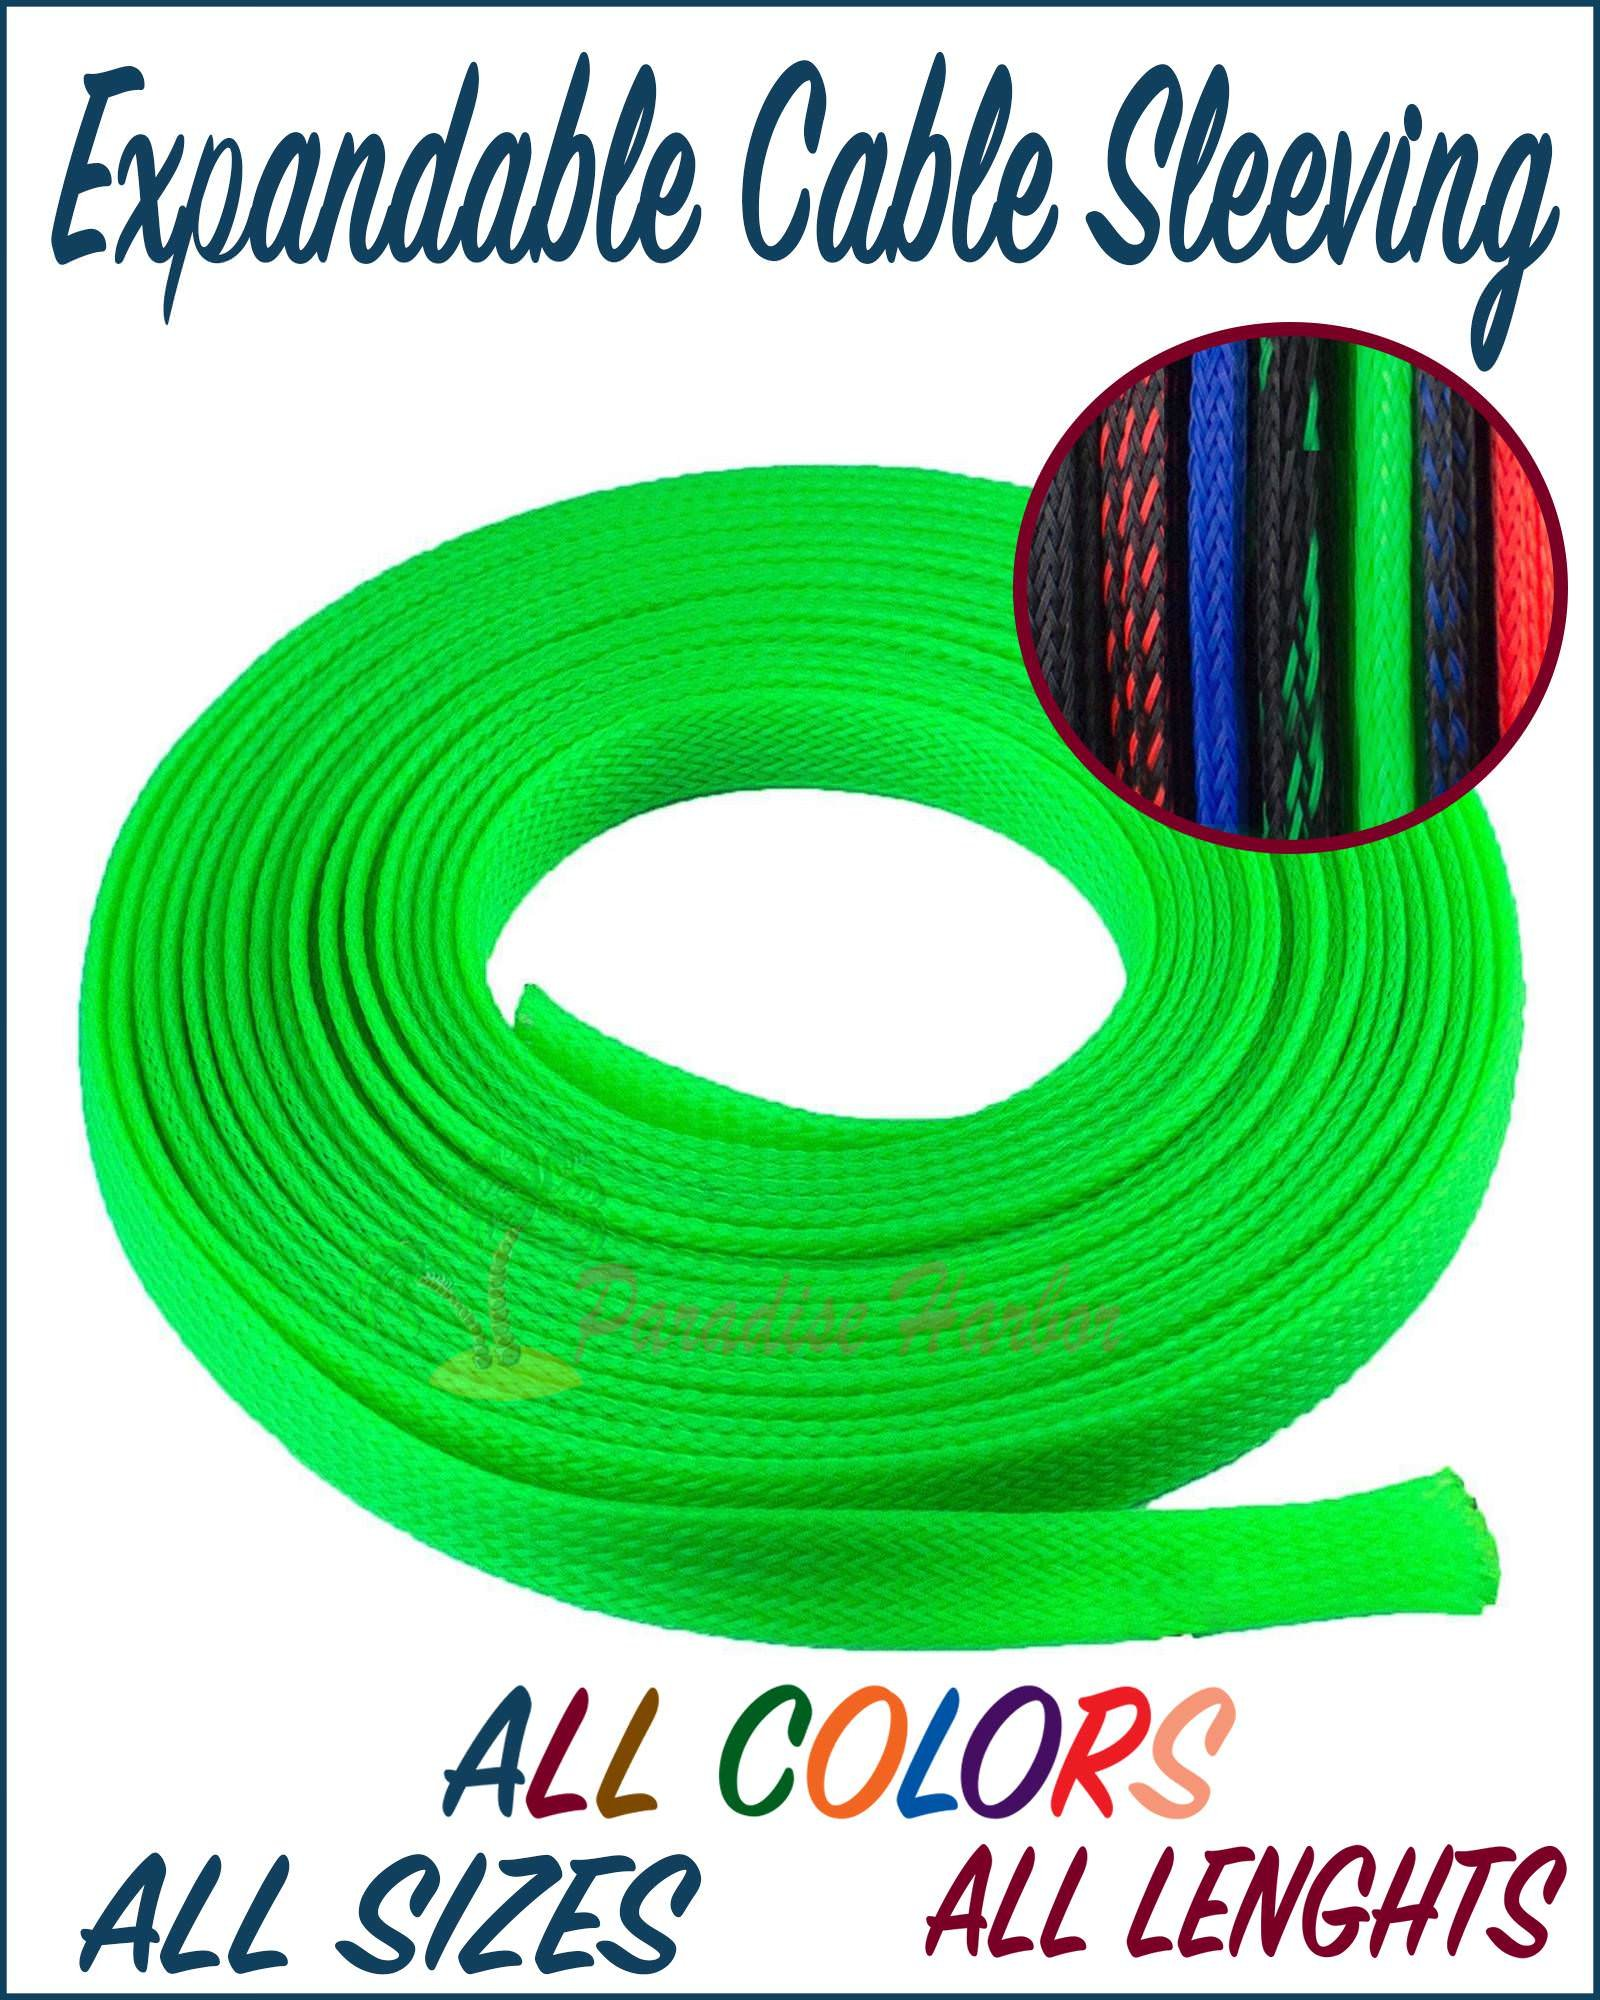 Cheap Psu Cable Sleeving, find Psu Cable Sleeving deals on line at ...